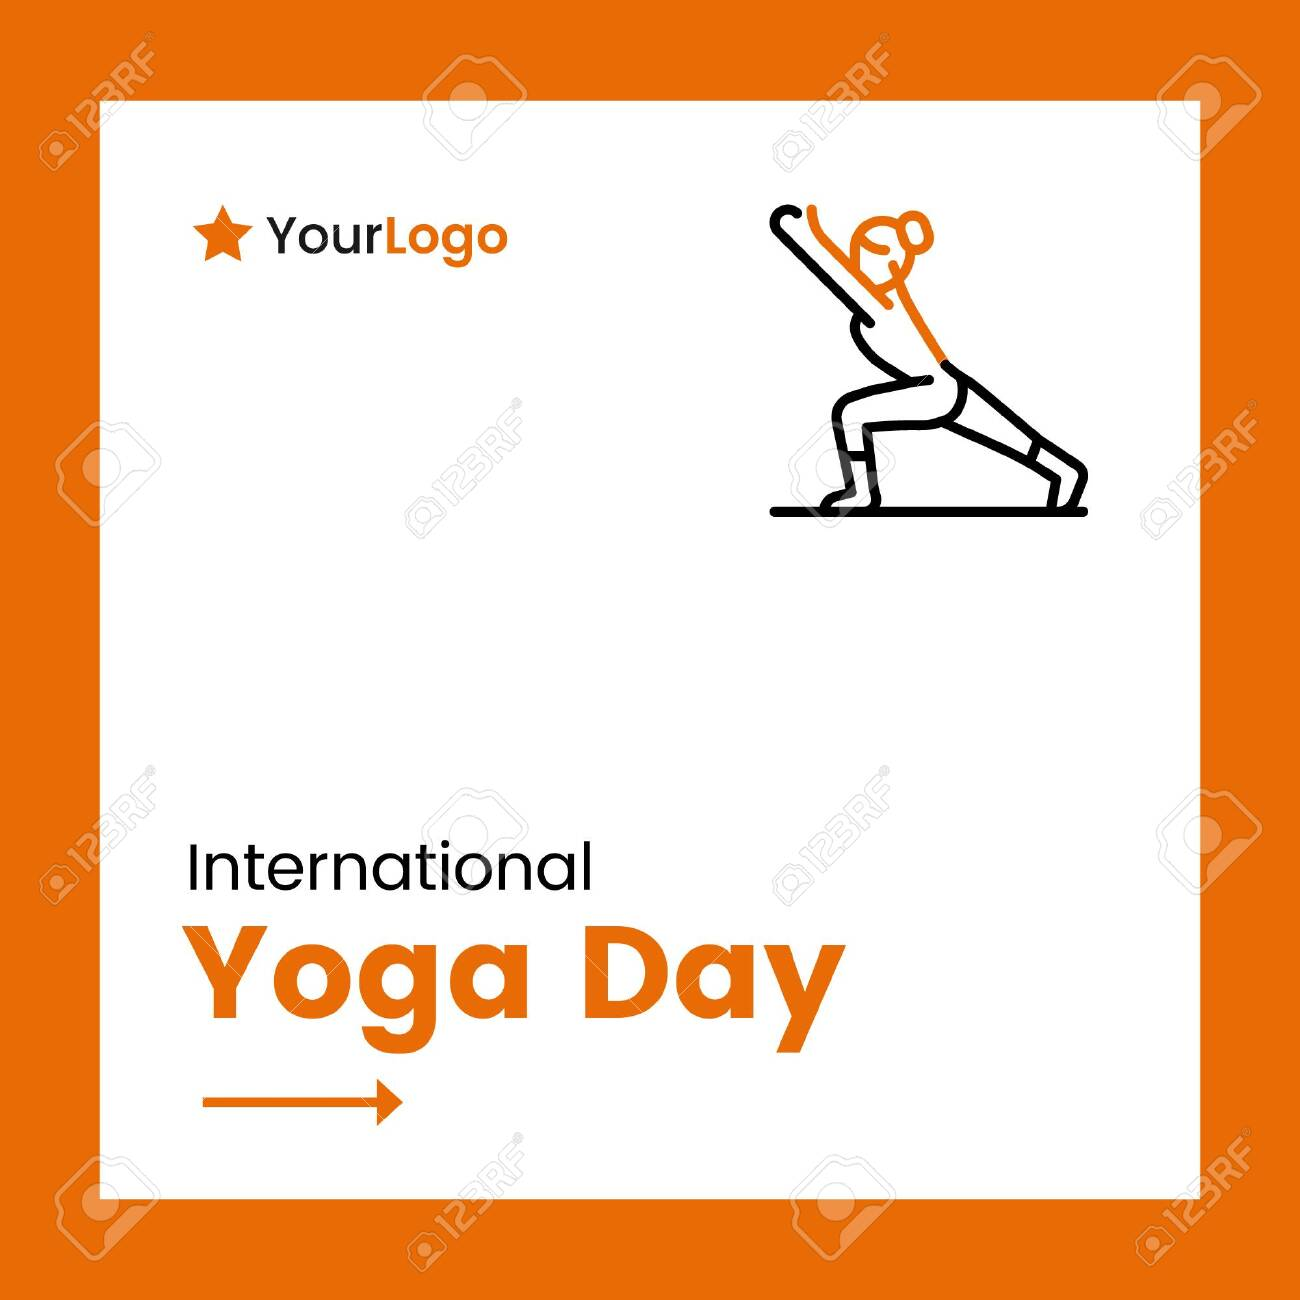 Vector Illustration Of International Yoga Day Banner Design Royalty Free Cliparts Vectors And Stock Illustration Image 139014043